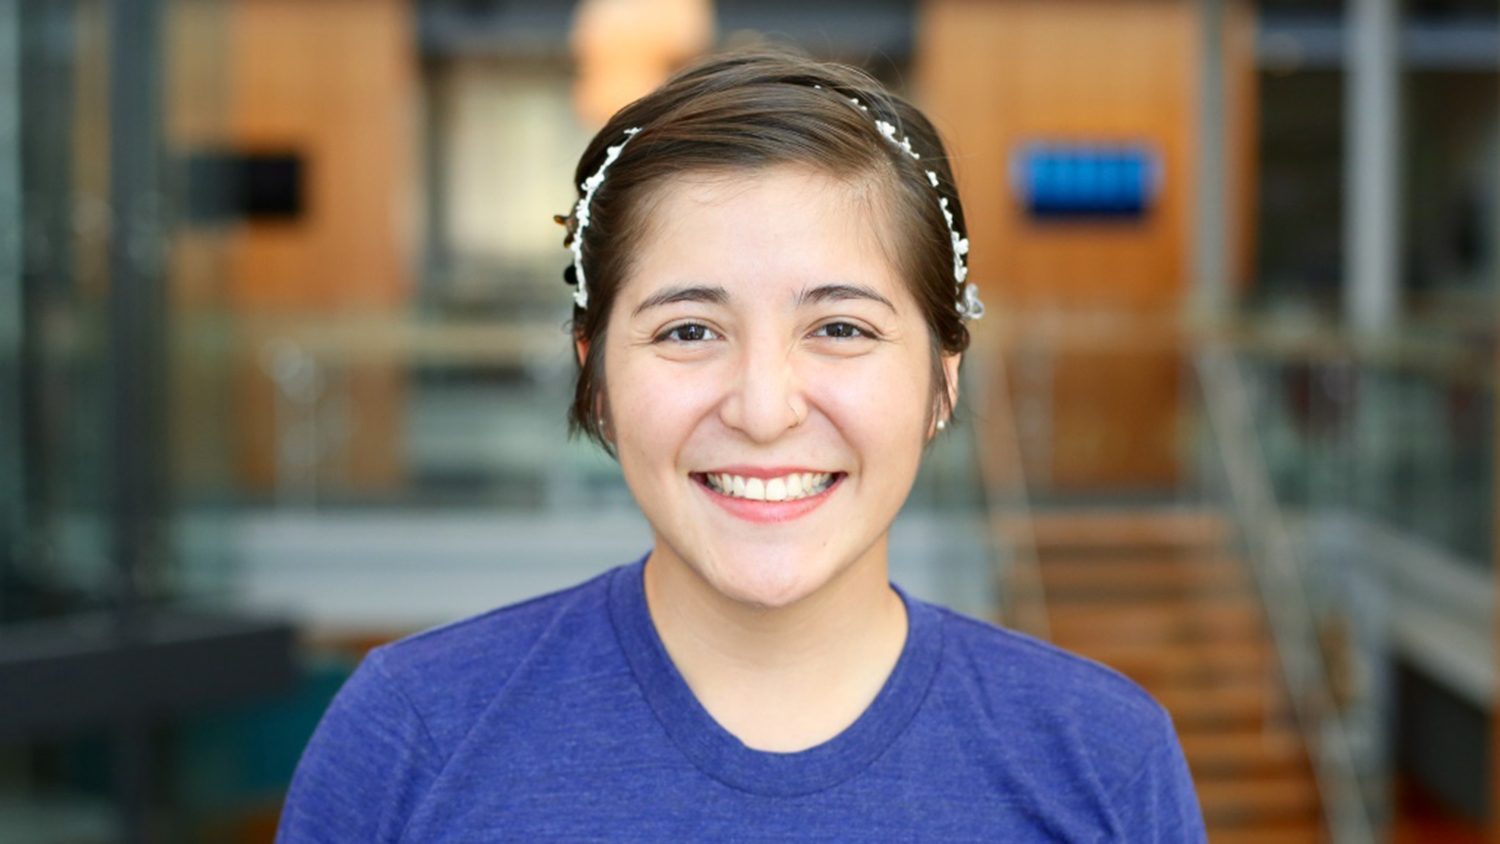 Estefania Castro-Vazquez is an NC State CALS student with a bright future.